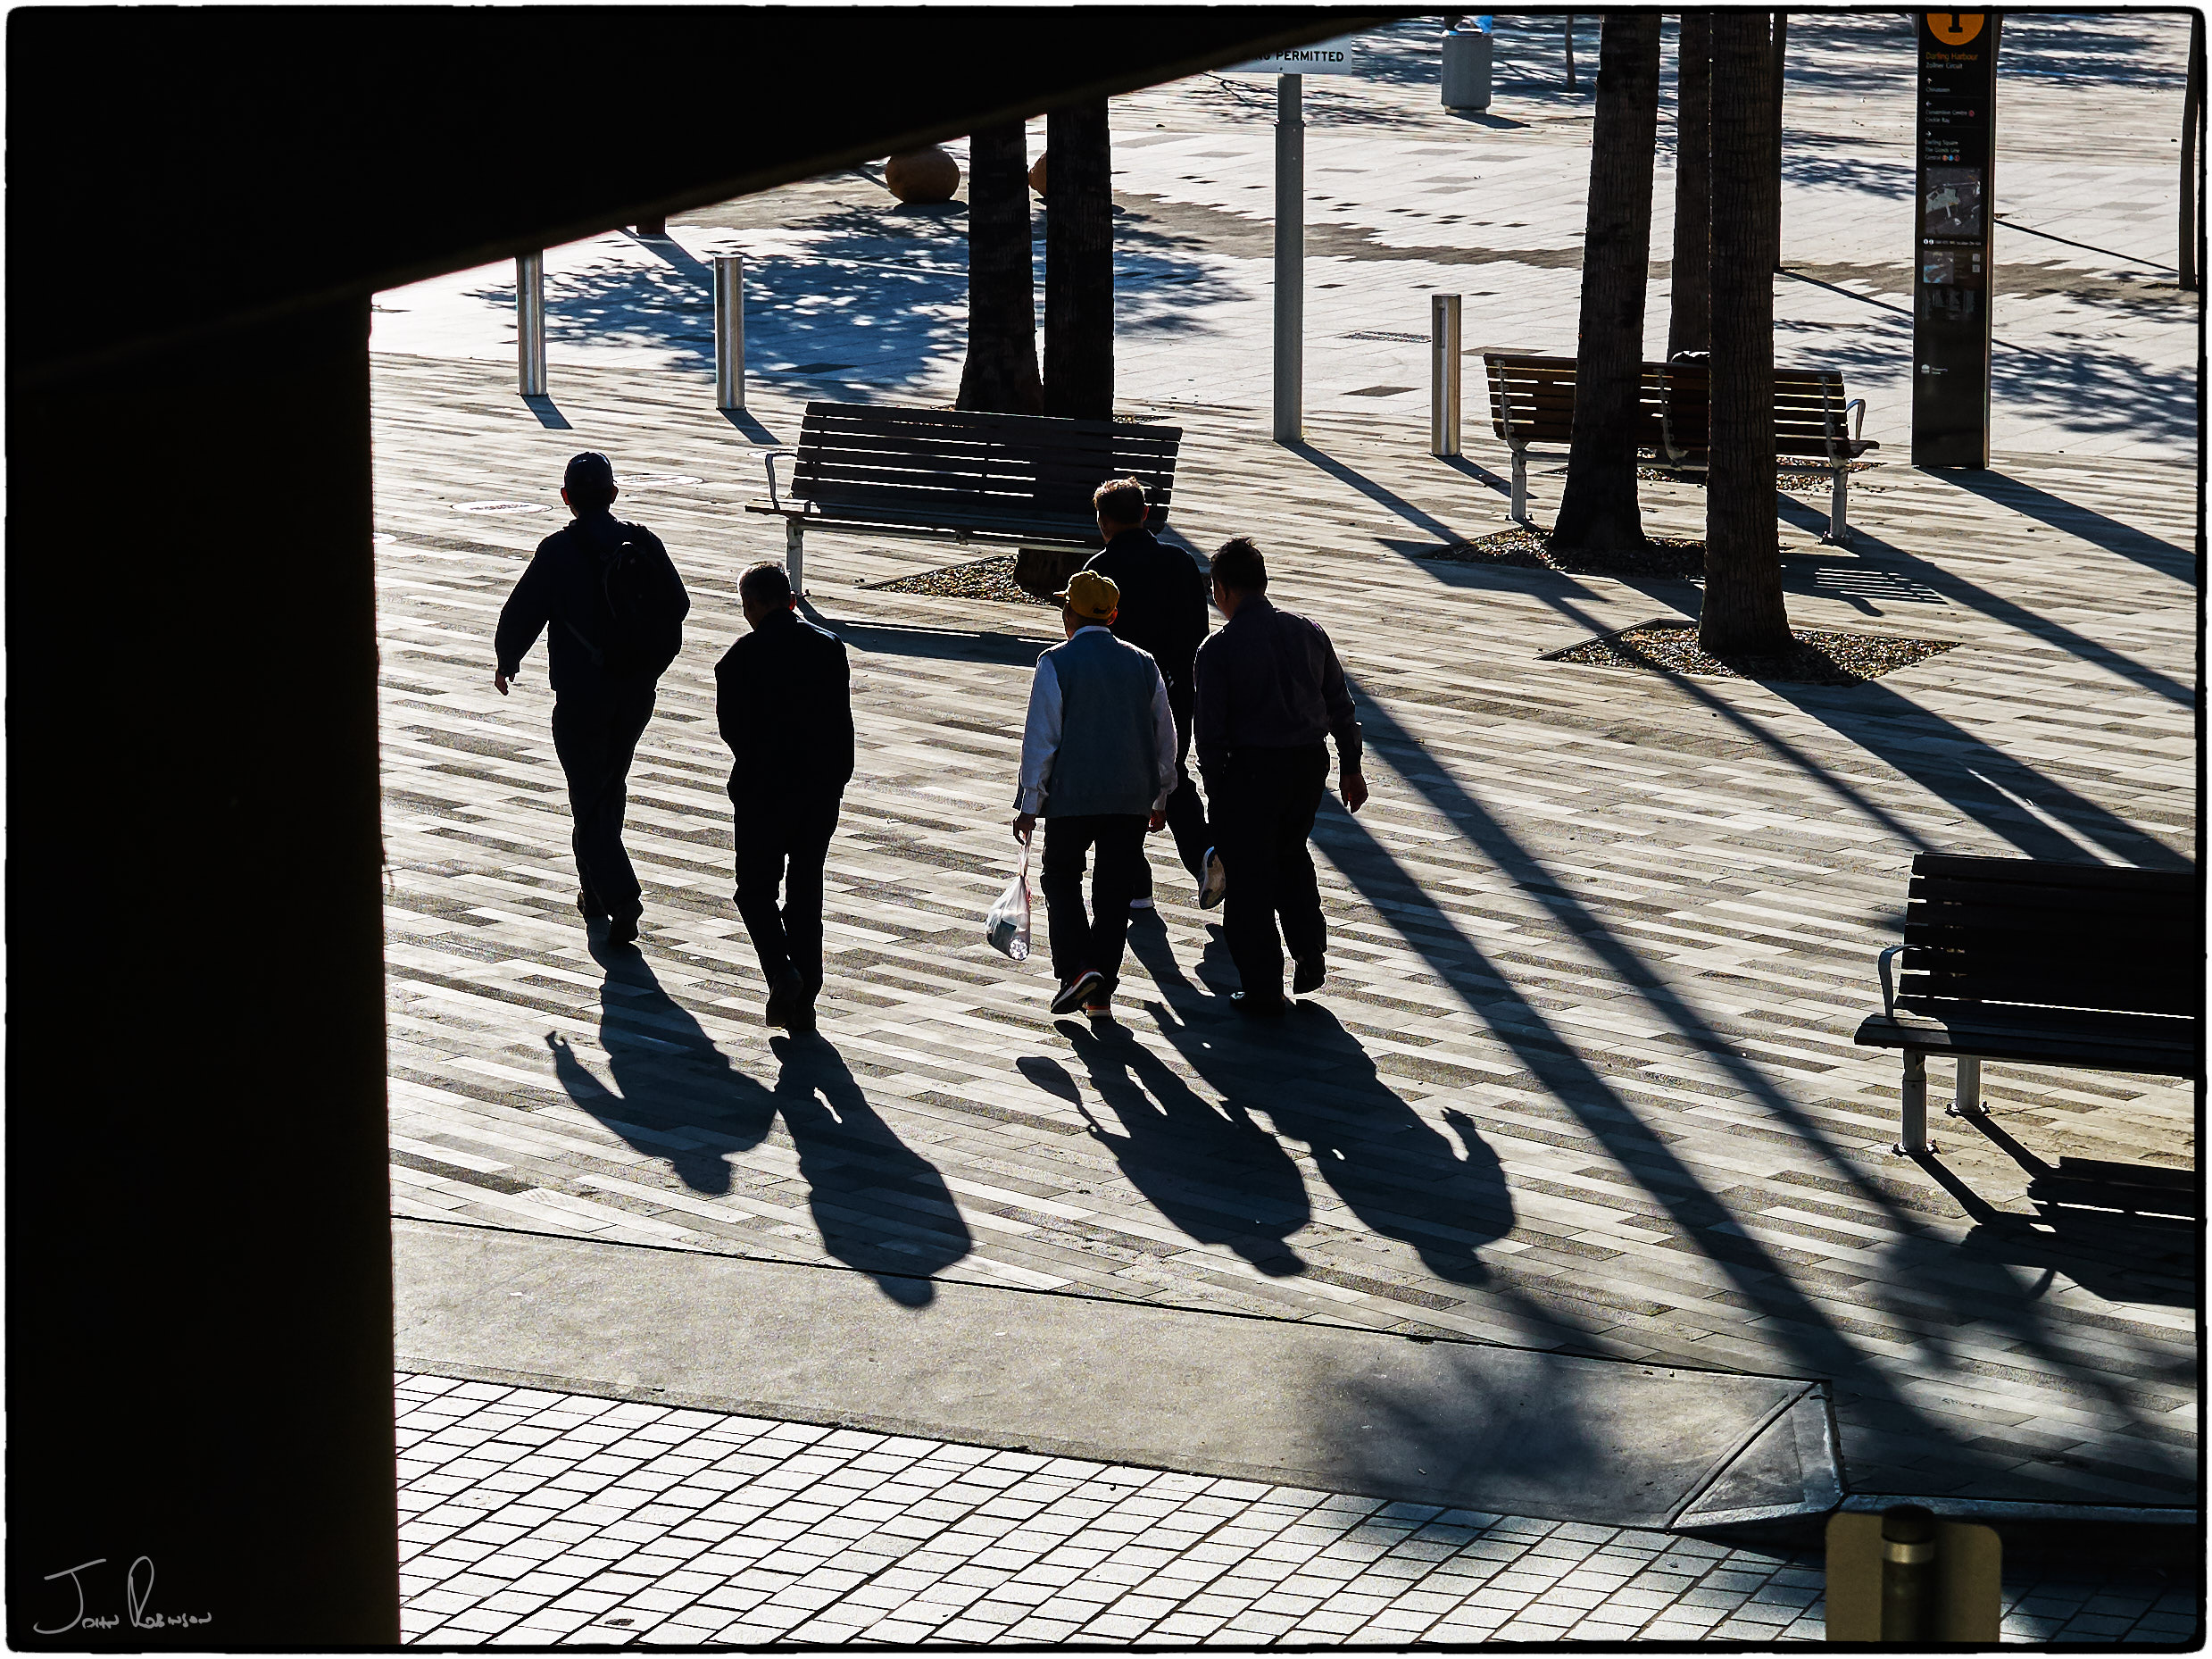 Striding into the Winter sun, Darling Harbour, Sydney